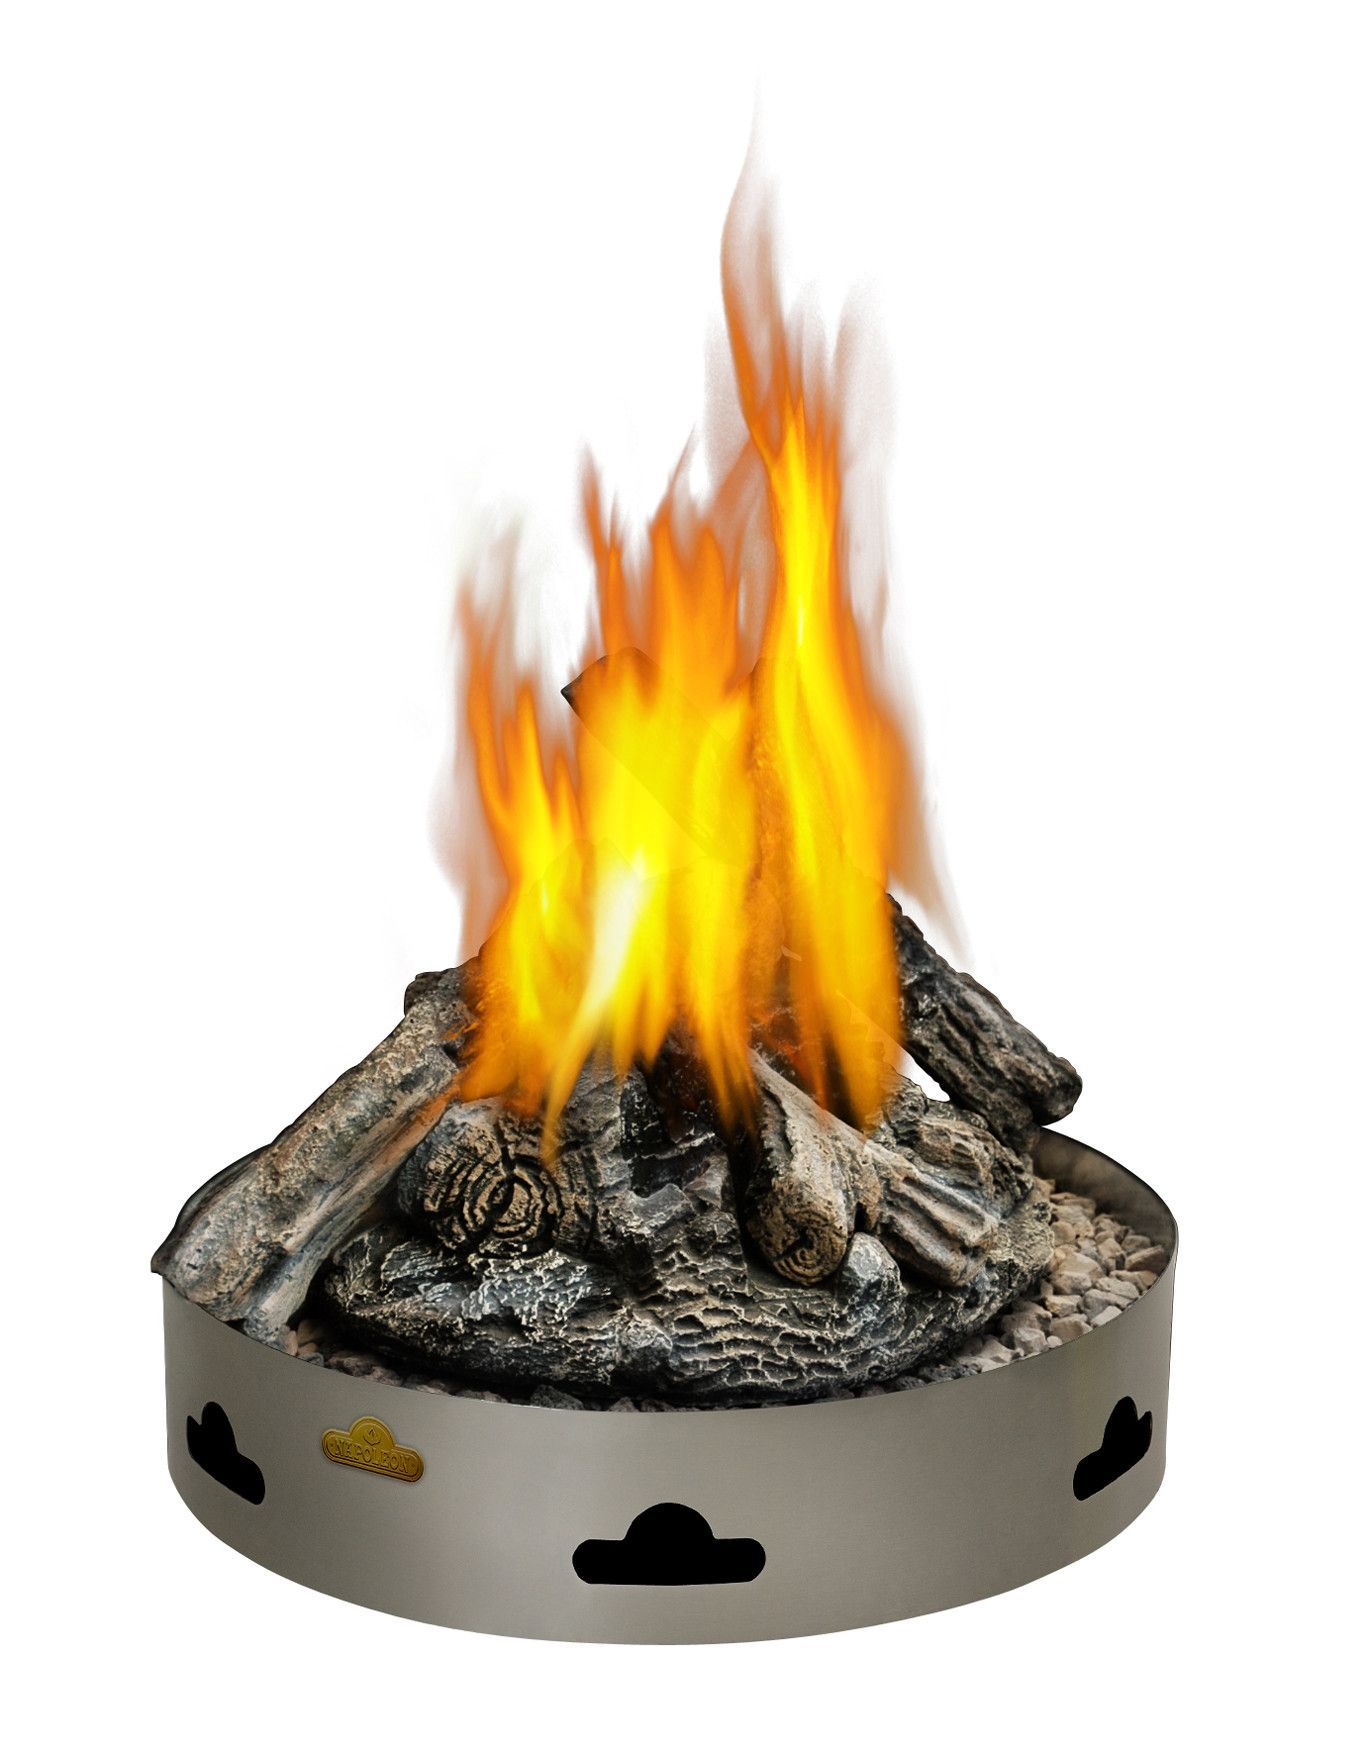 Features Stainless Steel Burner And Base Fuel Natural Gas Complete With Flexible Hose Connector And Natural Gas Fire Pit Gas Firepit Propane Fire Pit